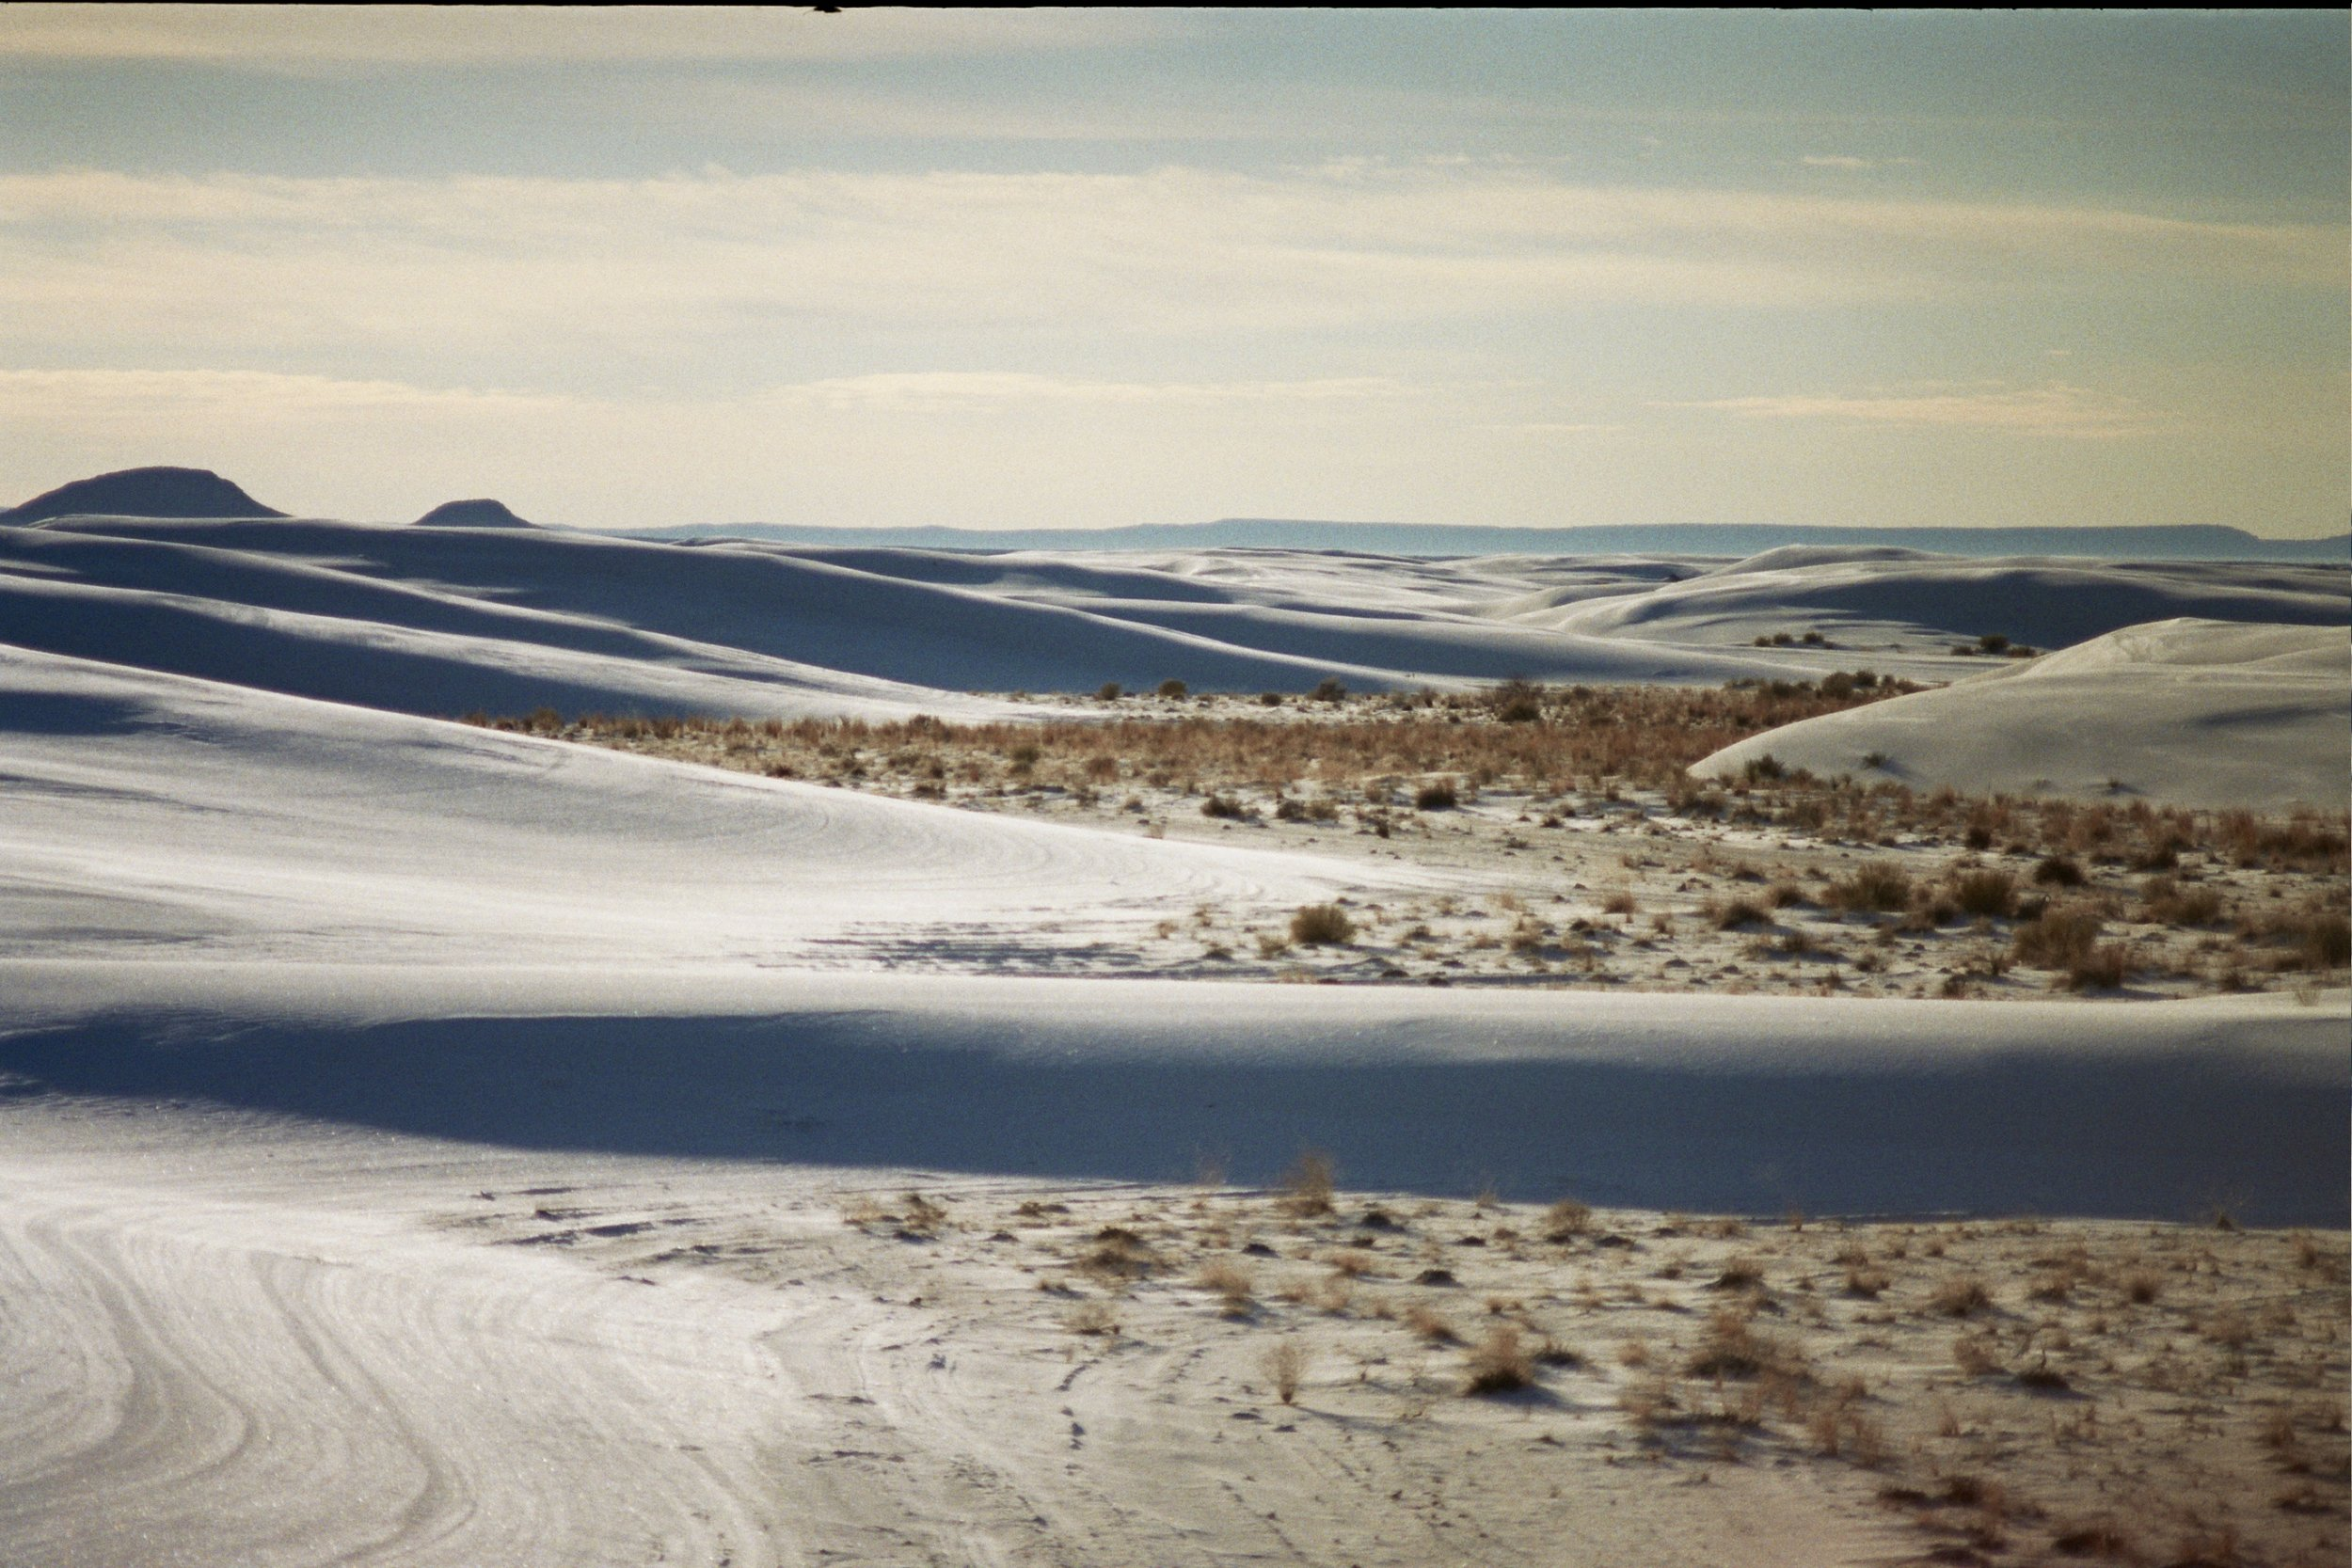 """""""White Sands National Monument"""" by Brett Sutton, size made to order, film photography (2017), f  rom $85 and up 